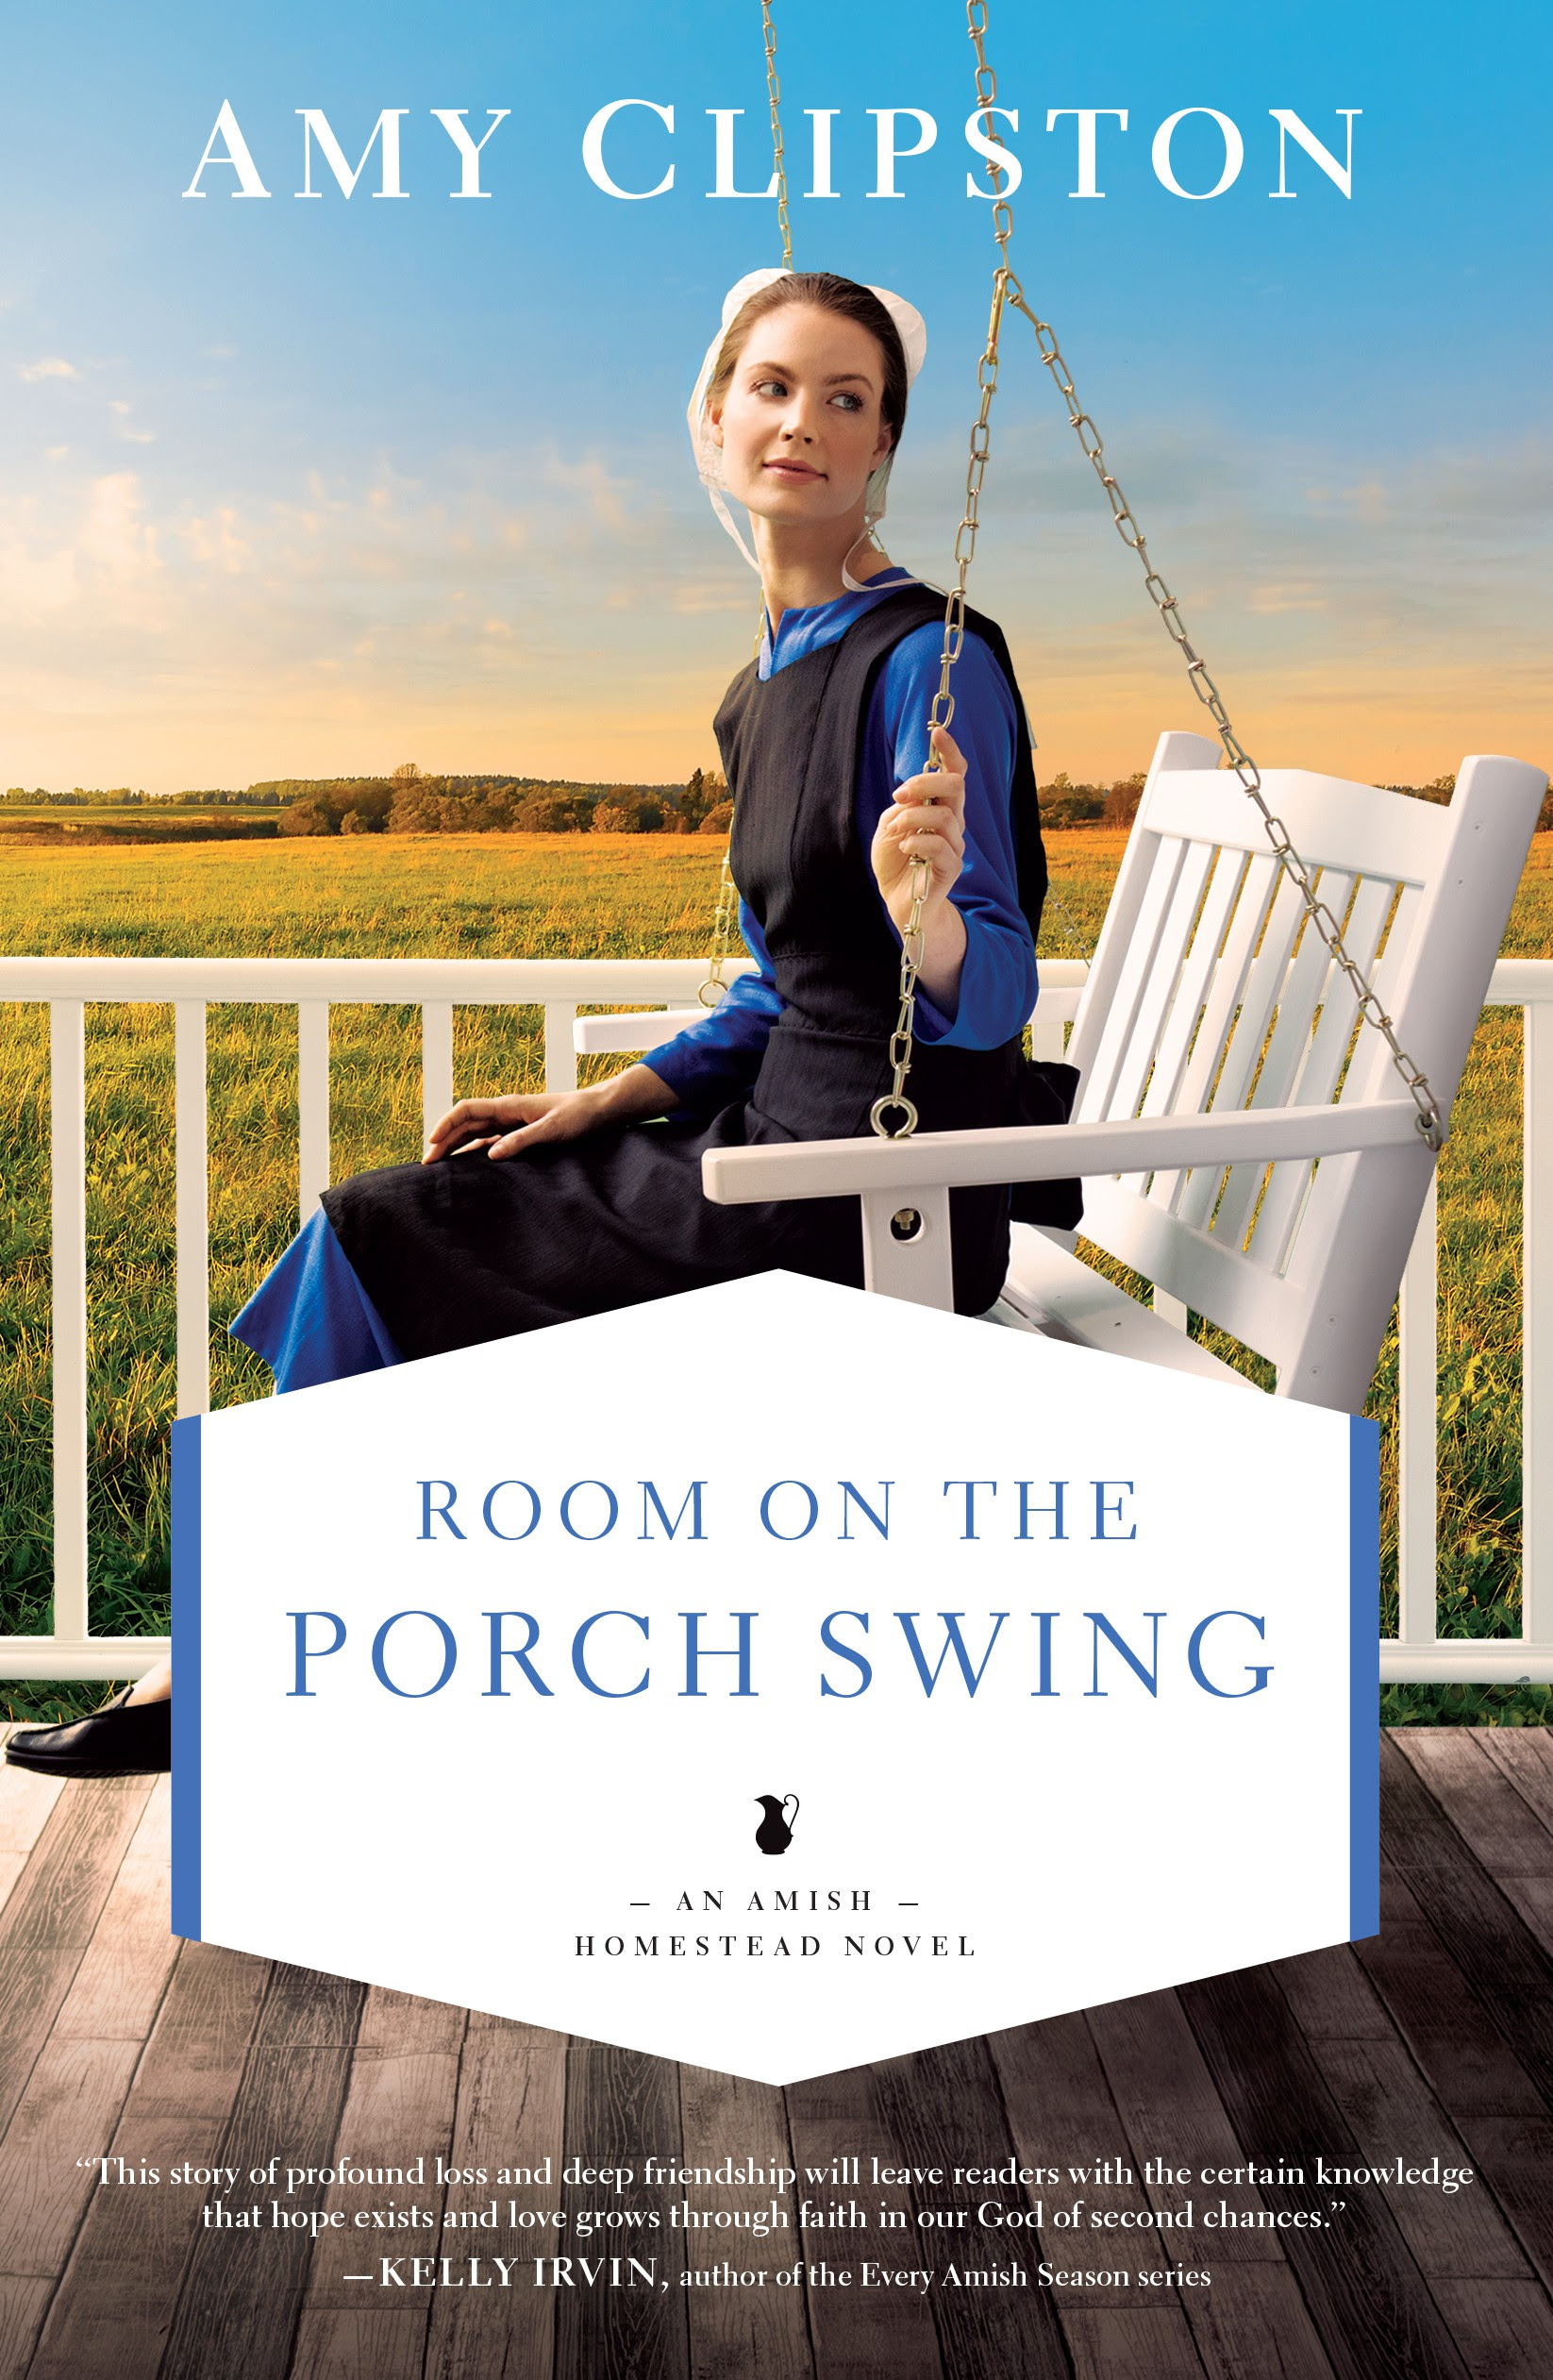 Image result for ROOM ON THE PORCH SWING AMY CLIPSTON